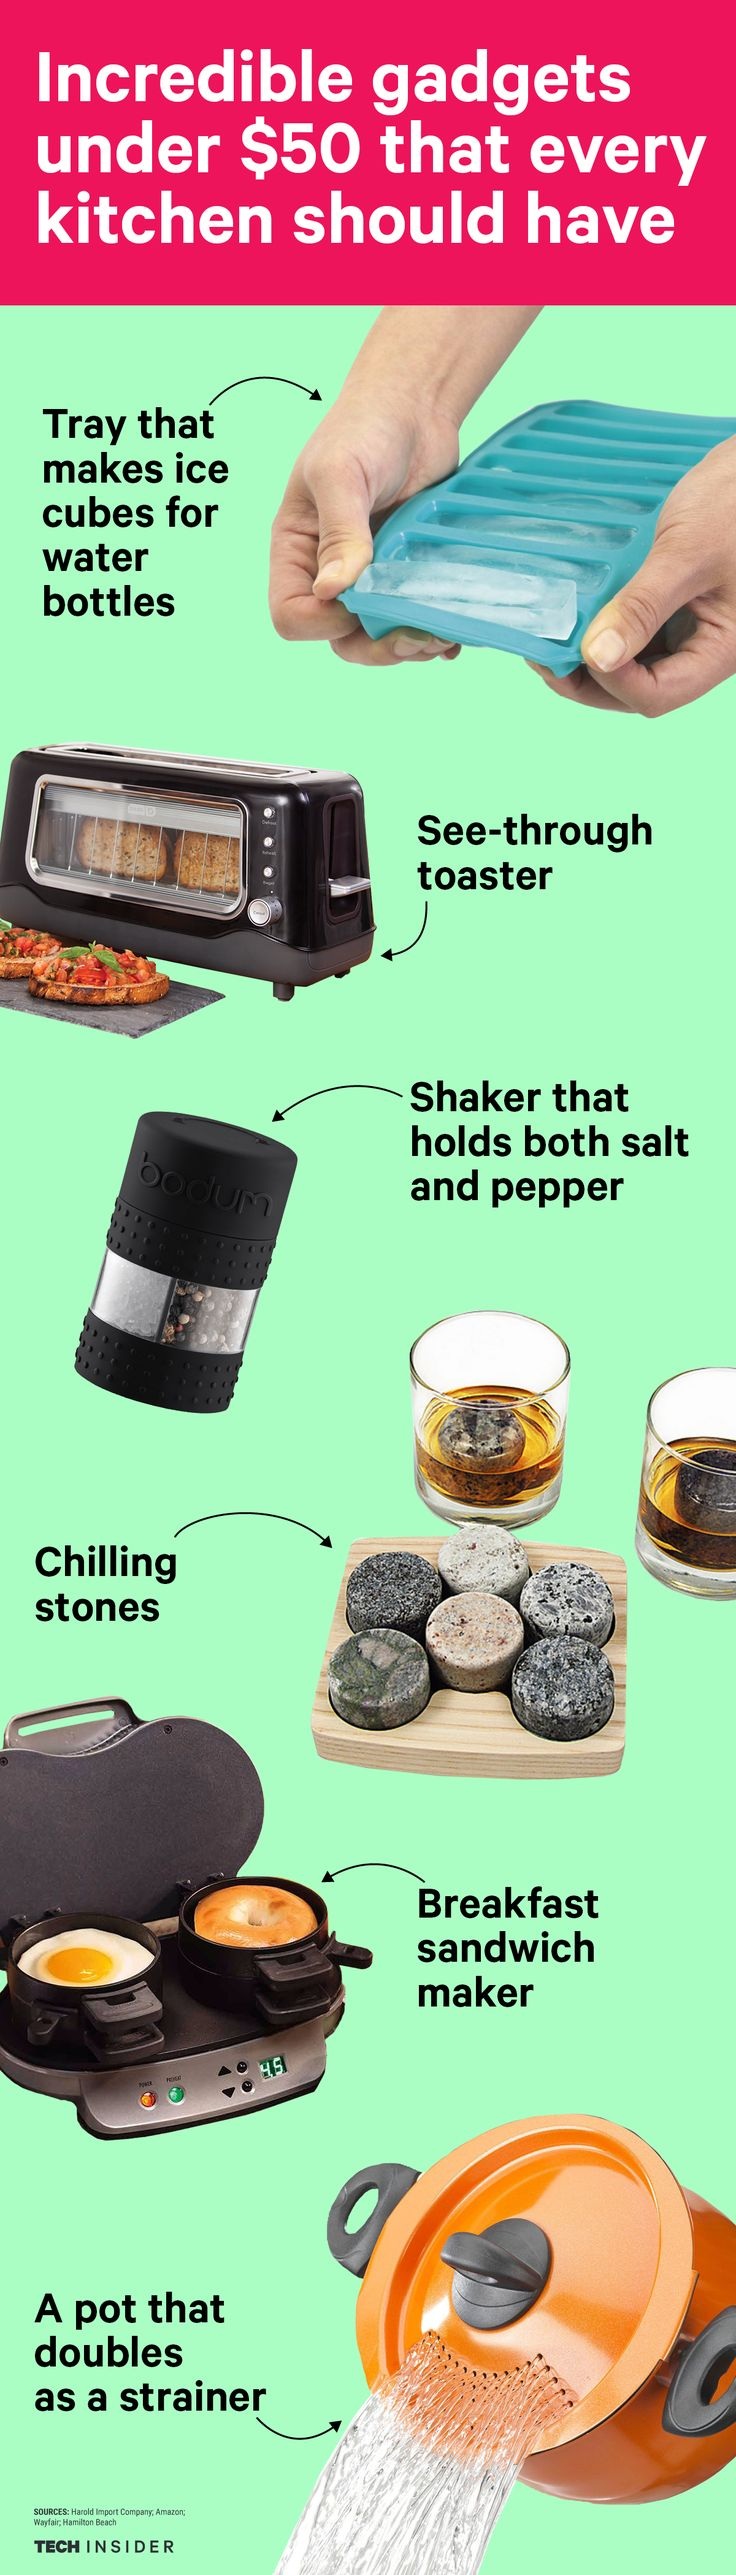 From see-through toasters to chilling stones that get your whiskey to the perfect temperature without watering it down, these kitchen gadgets are every cent.